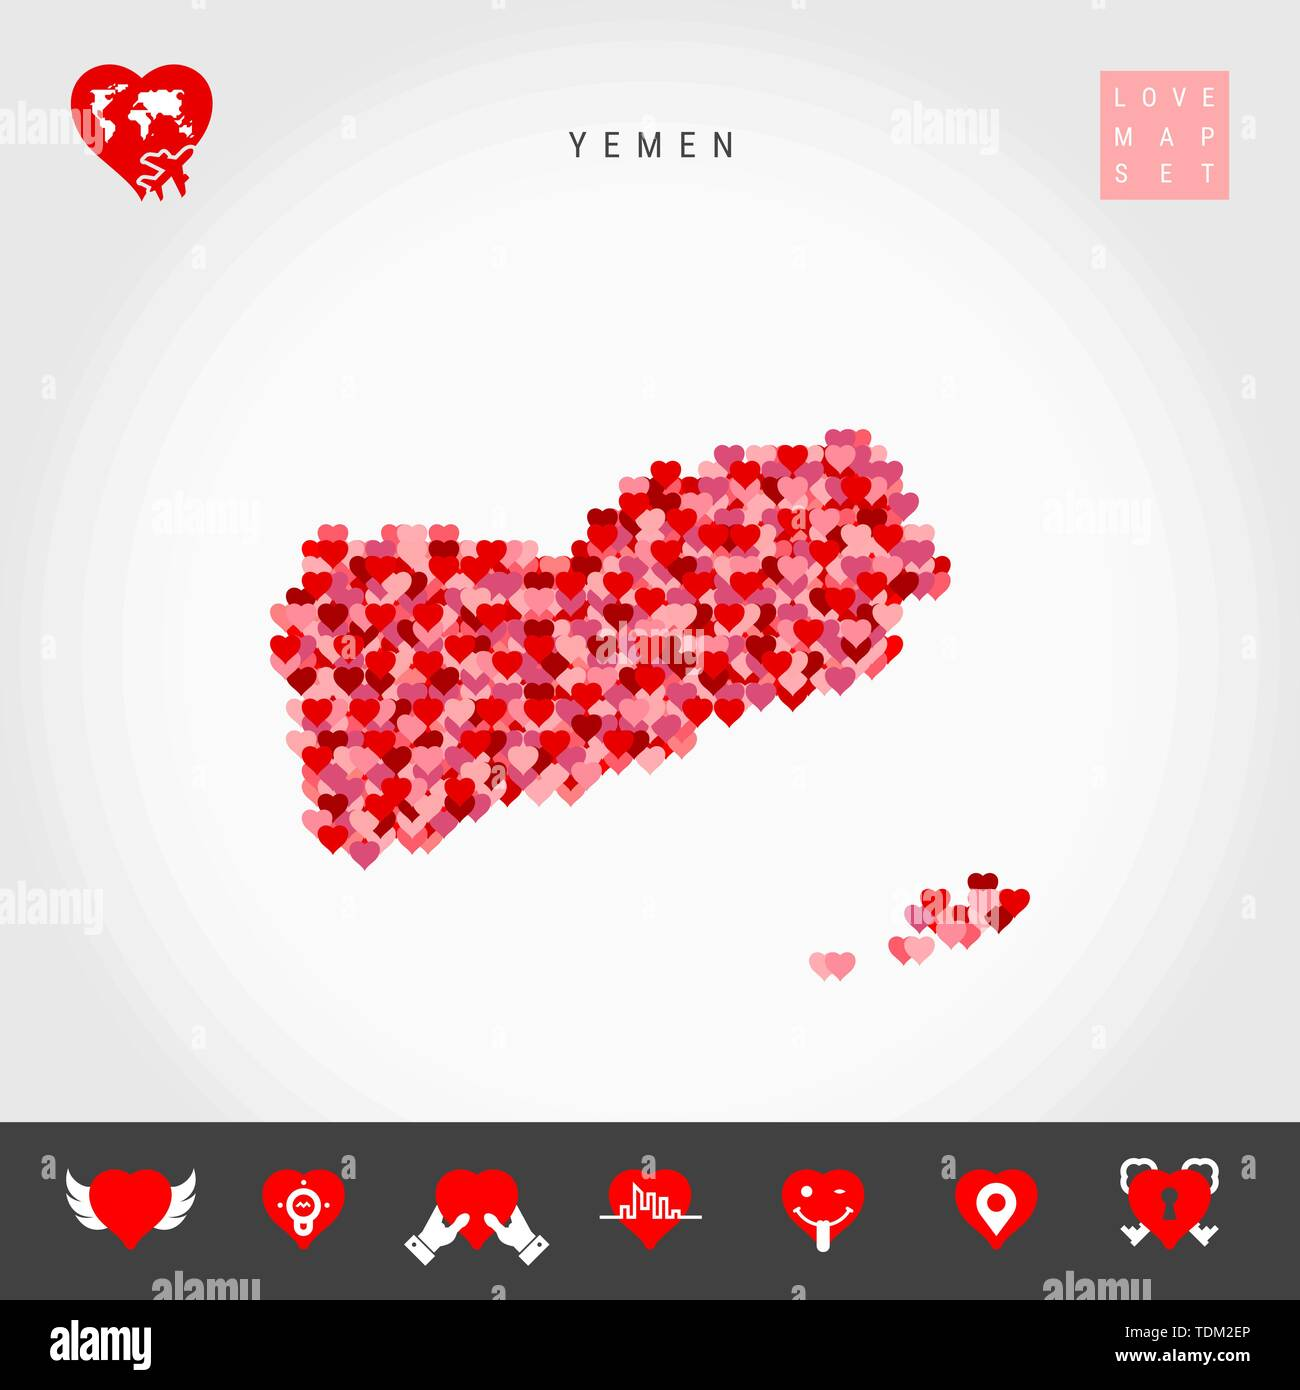 I Love Yemen. Red and Pink Hearts Pattern Vector Map of Yemen Isolated on Grey Background. Love Icon Set. - Stock Vector